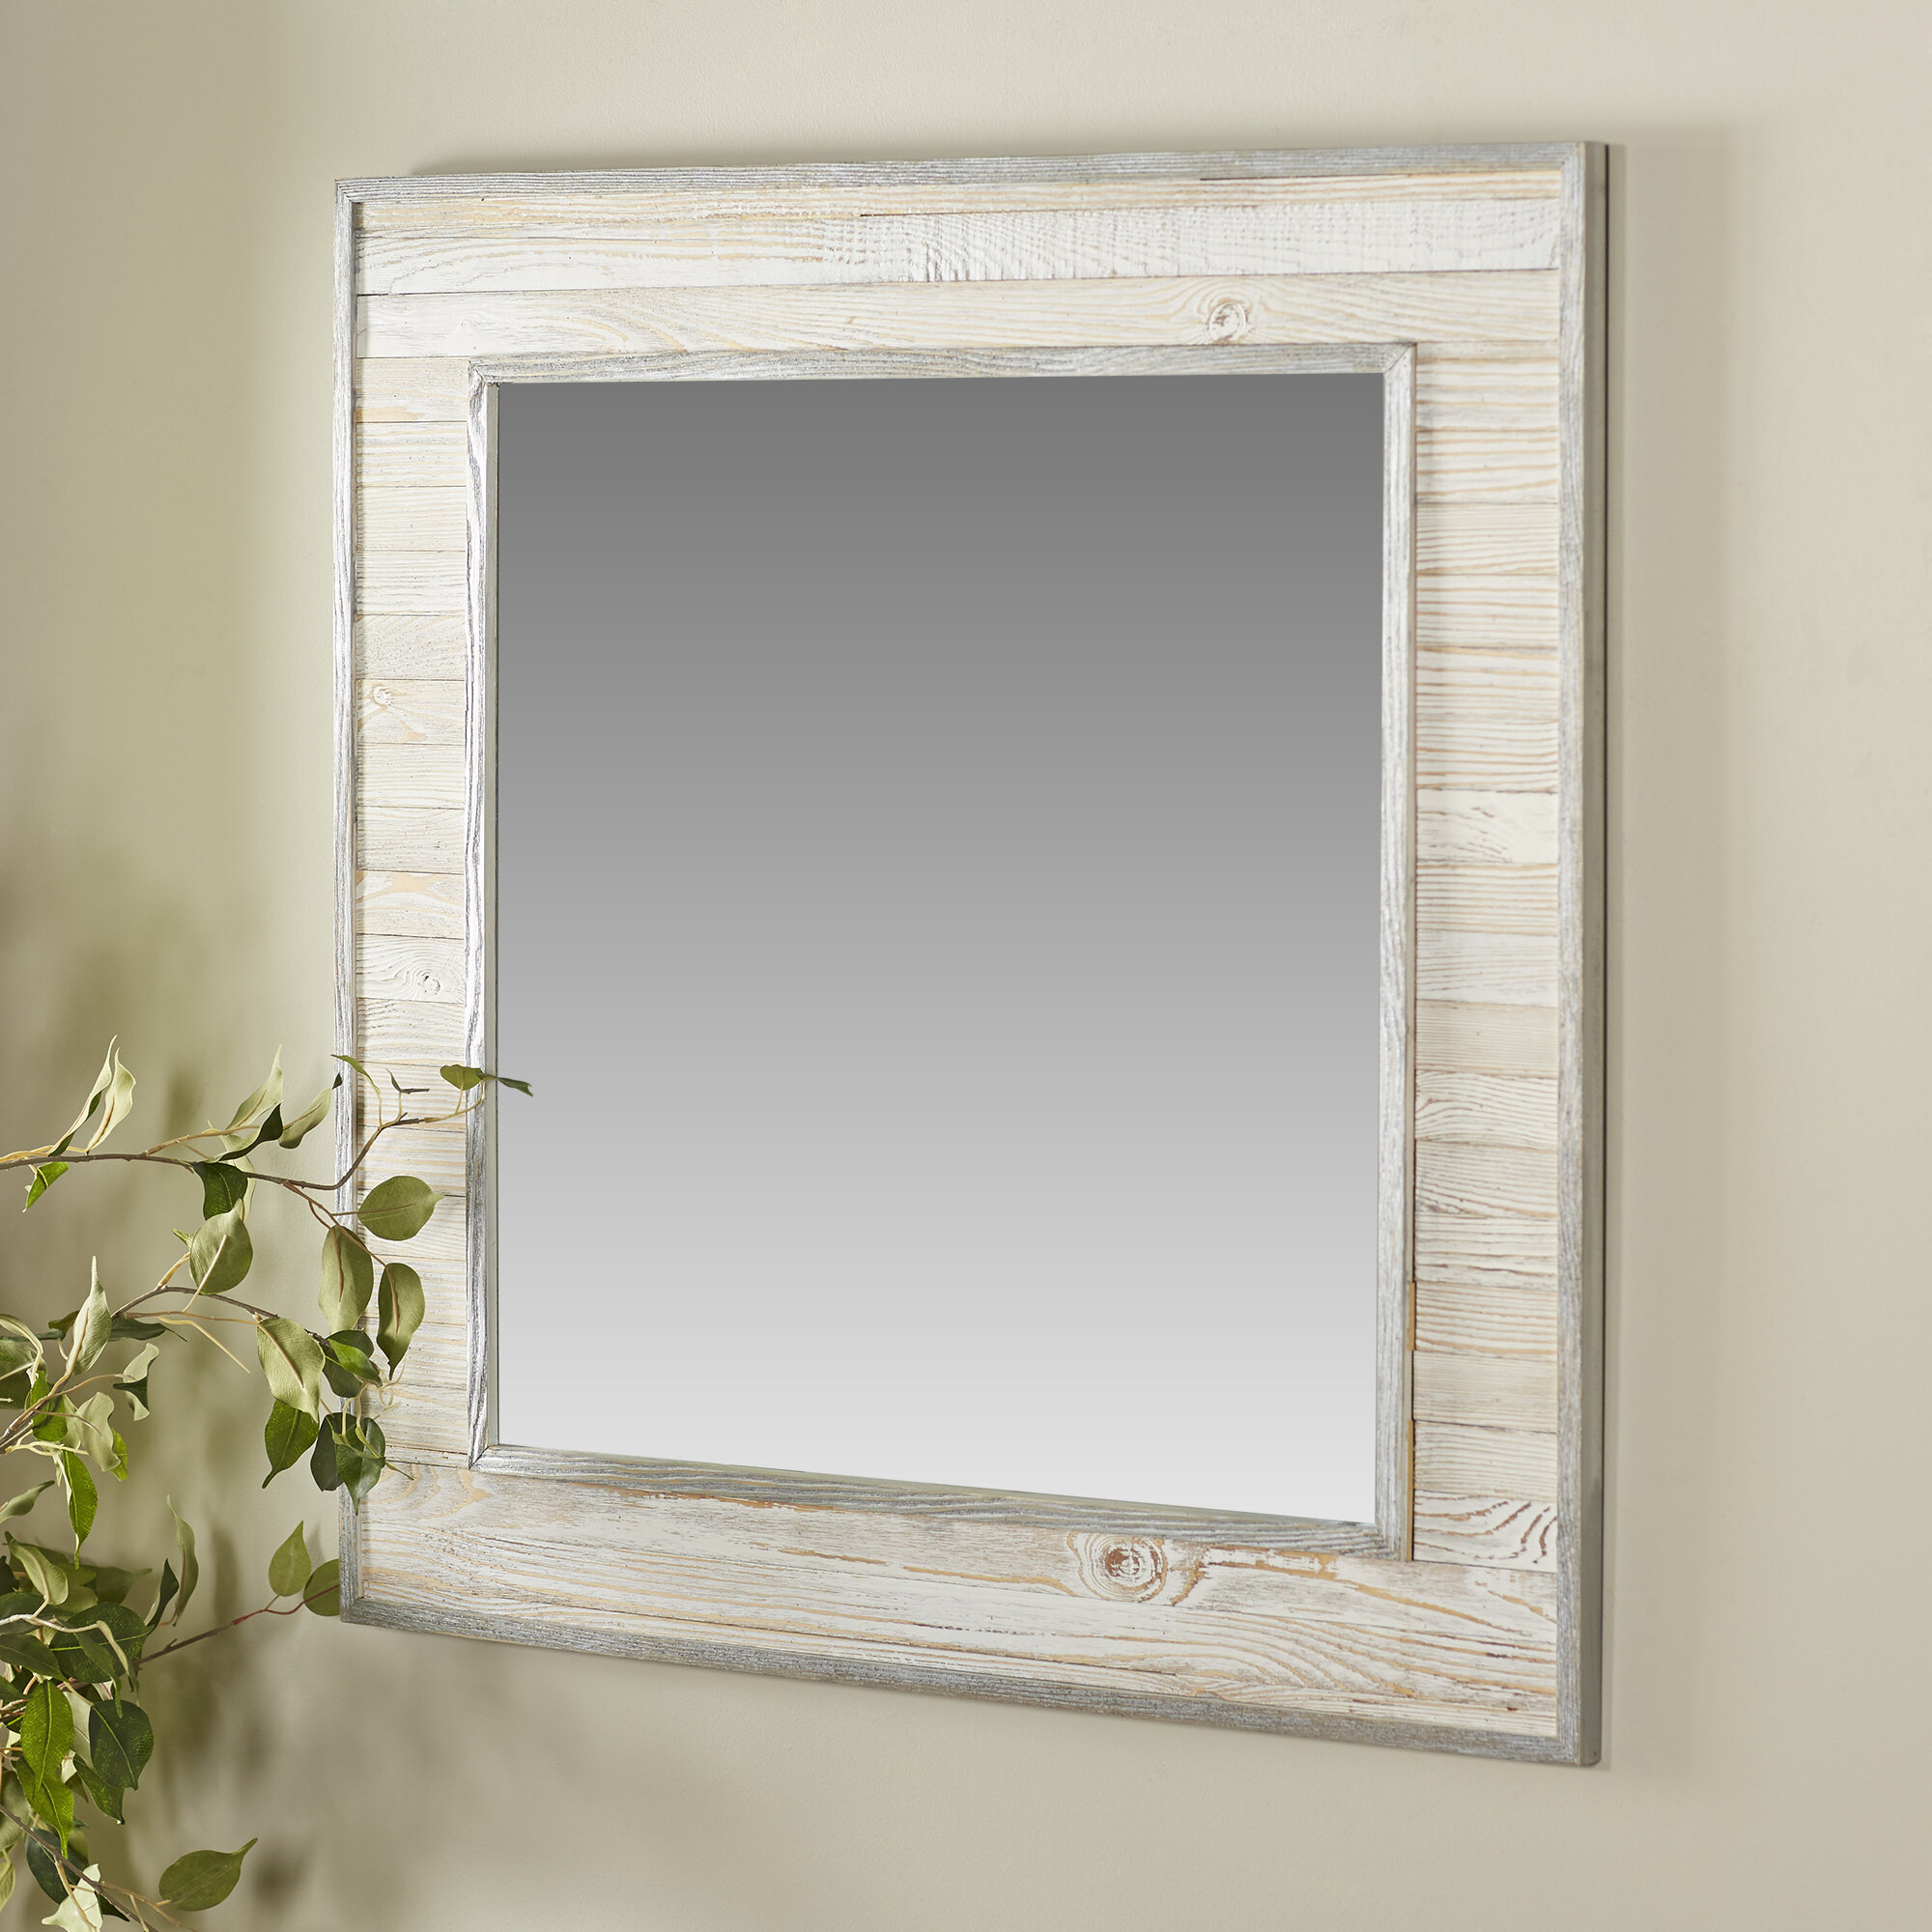 Rosecliff Heights Lexington Wood Square Wall Mirror & Reviews | Wayfair